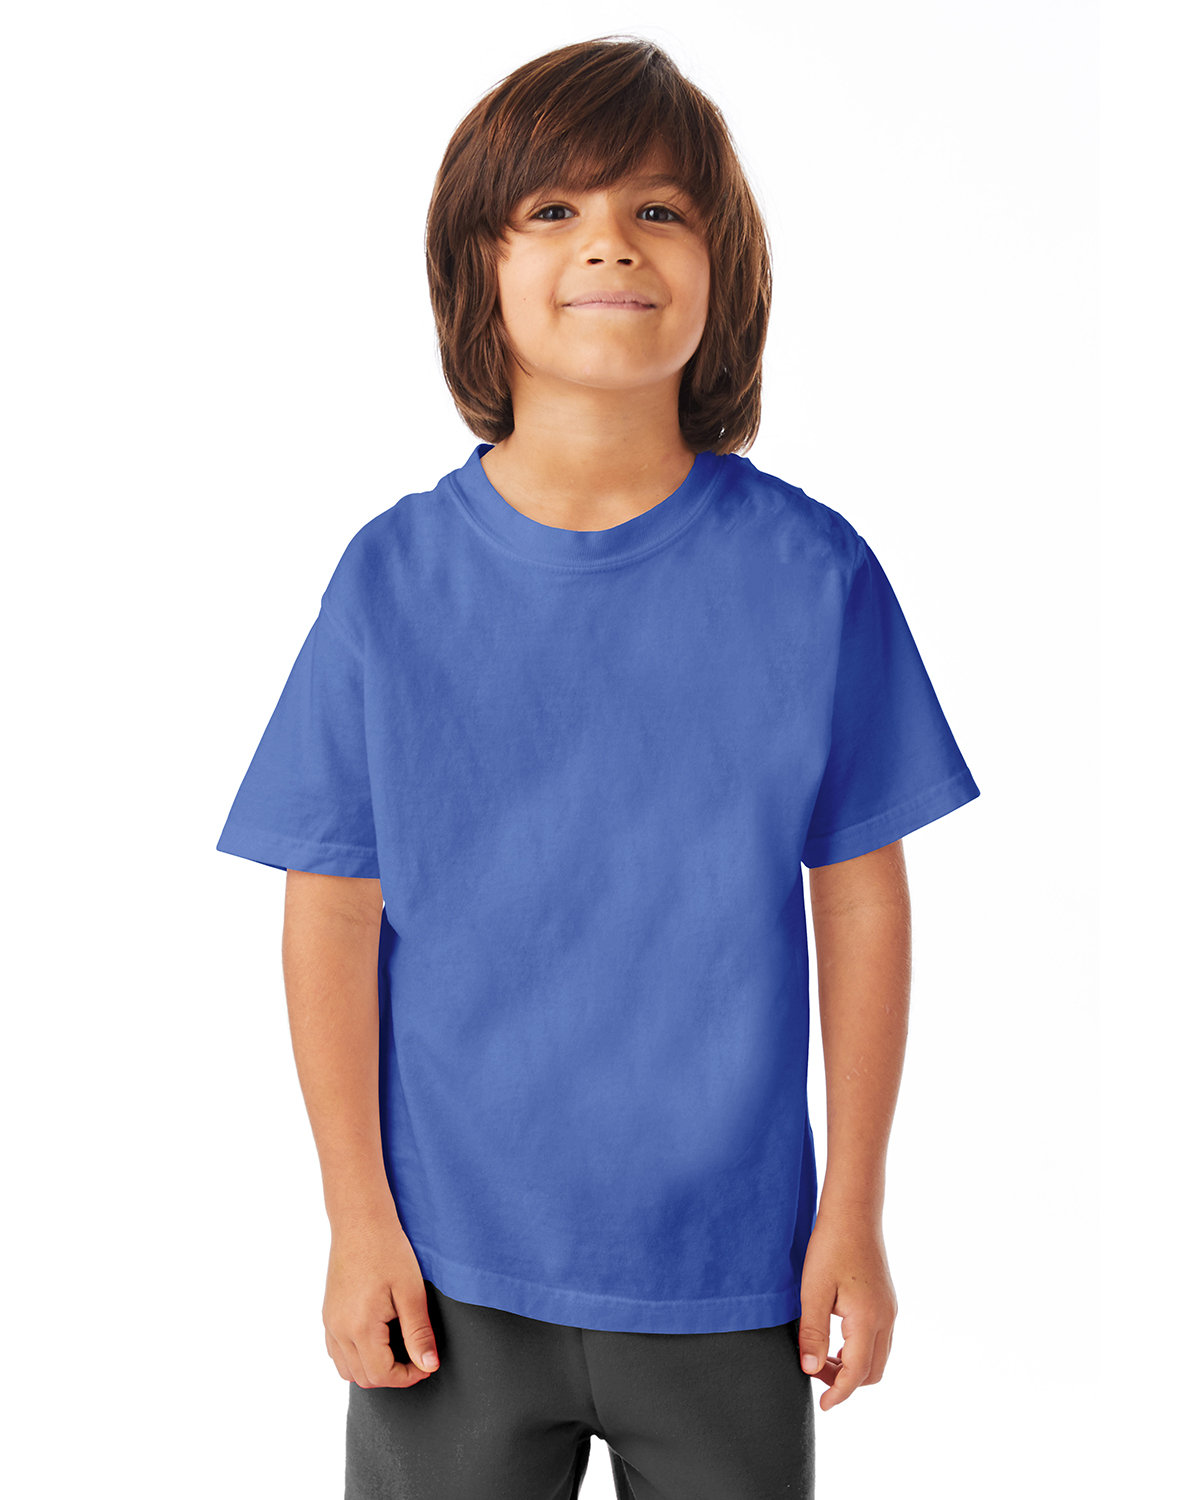 ComfortWash by Hanes Youth Garment-Dyed T-Shirt DEEP FORTE BLUE